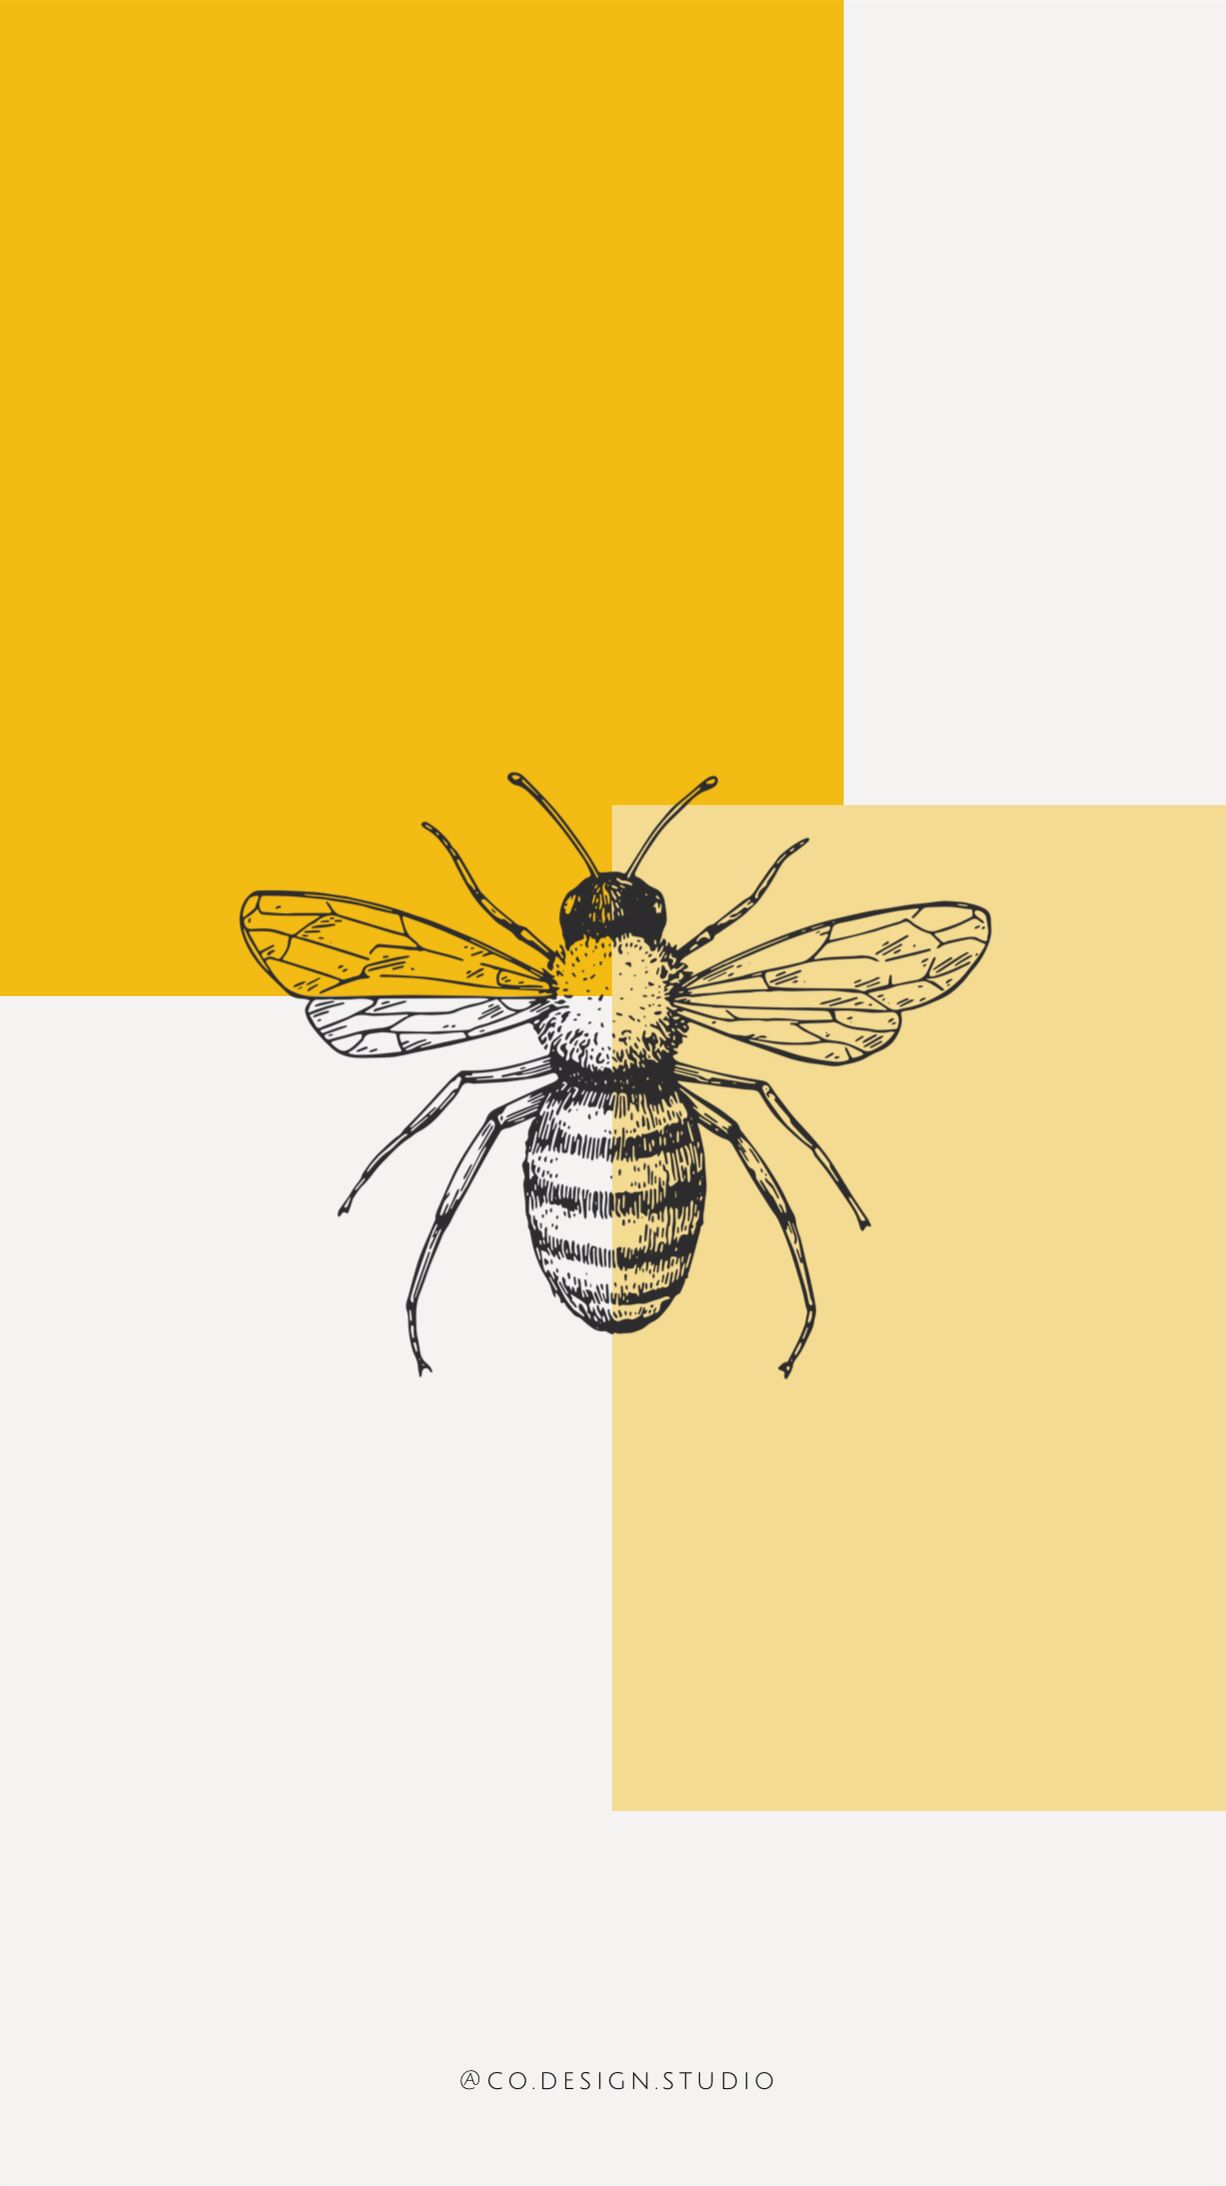 Wallpaper Iphone 2019 Graphicdesign Yellow Mustard Bee Honey Imagem De Fundo Para Iphone Ilustrações Ilustrações Florais